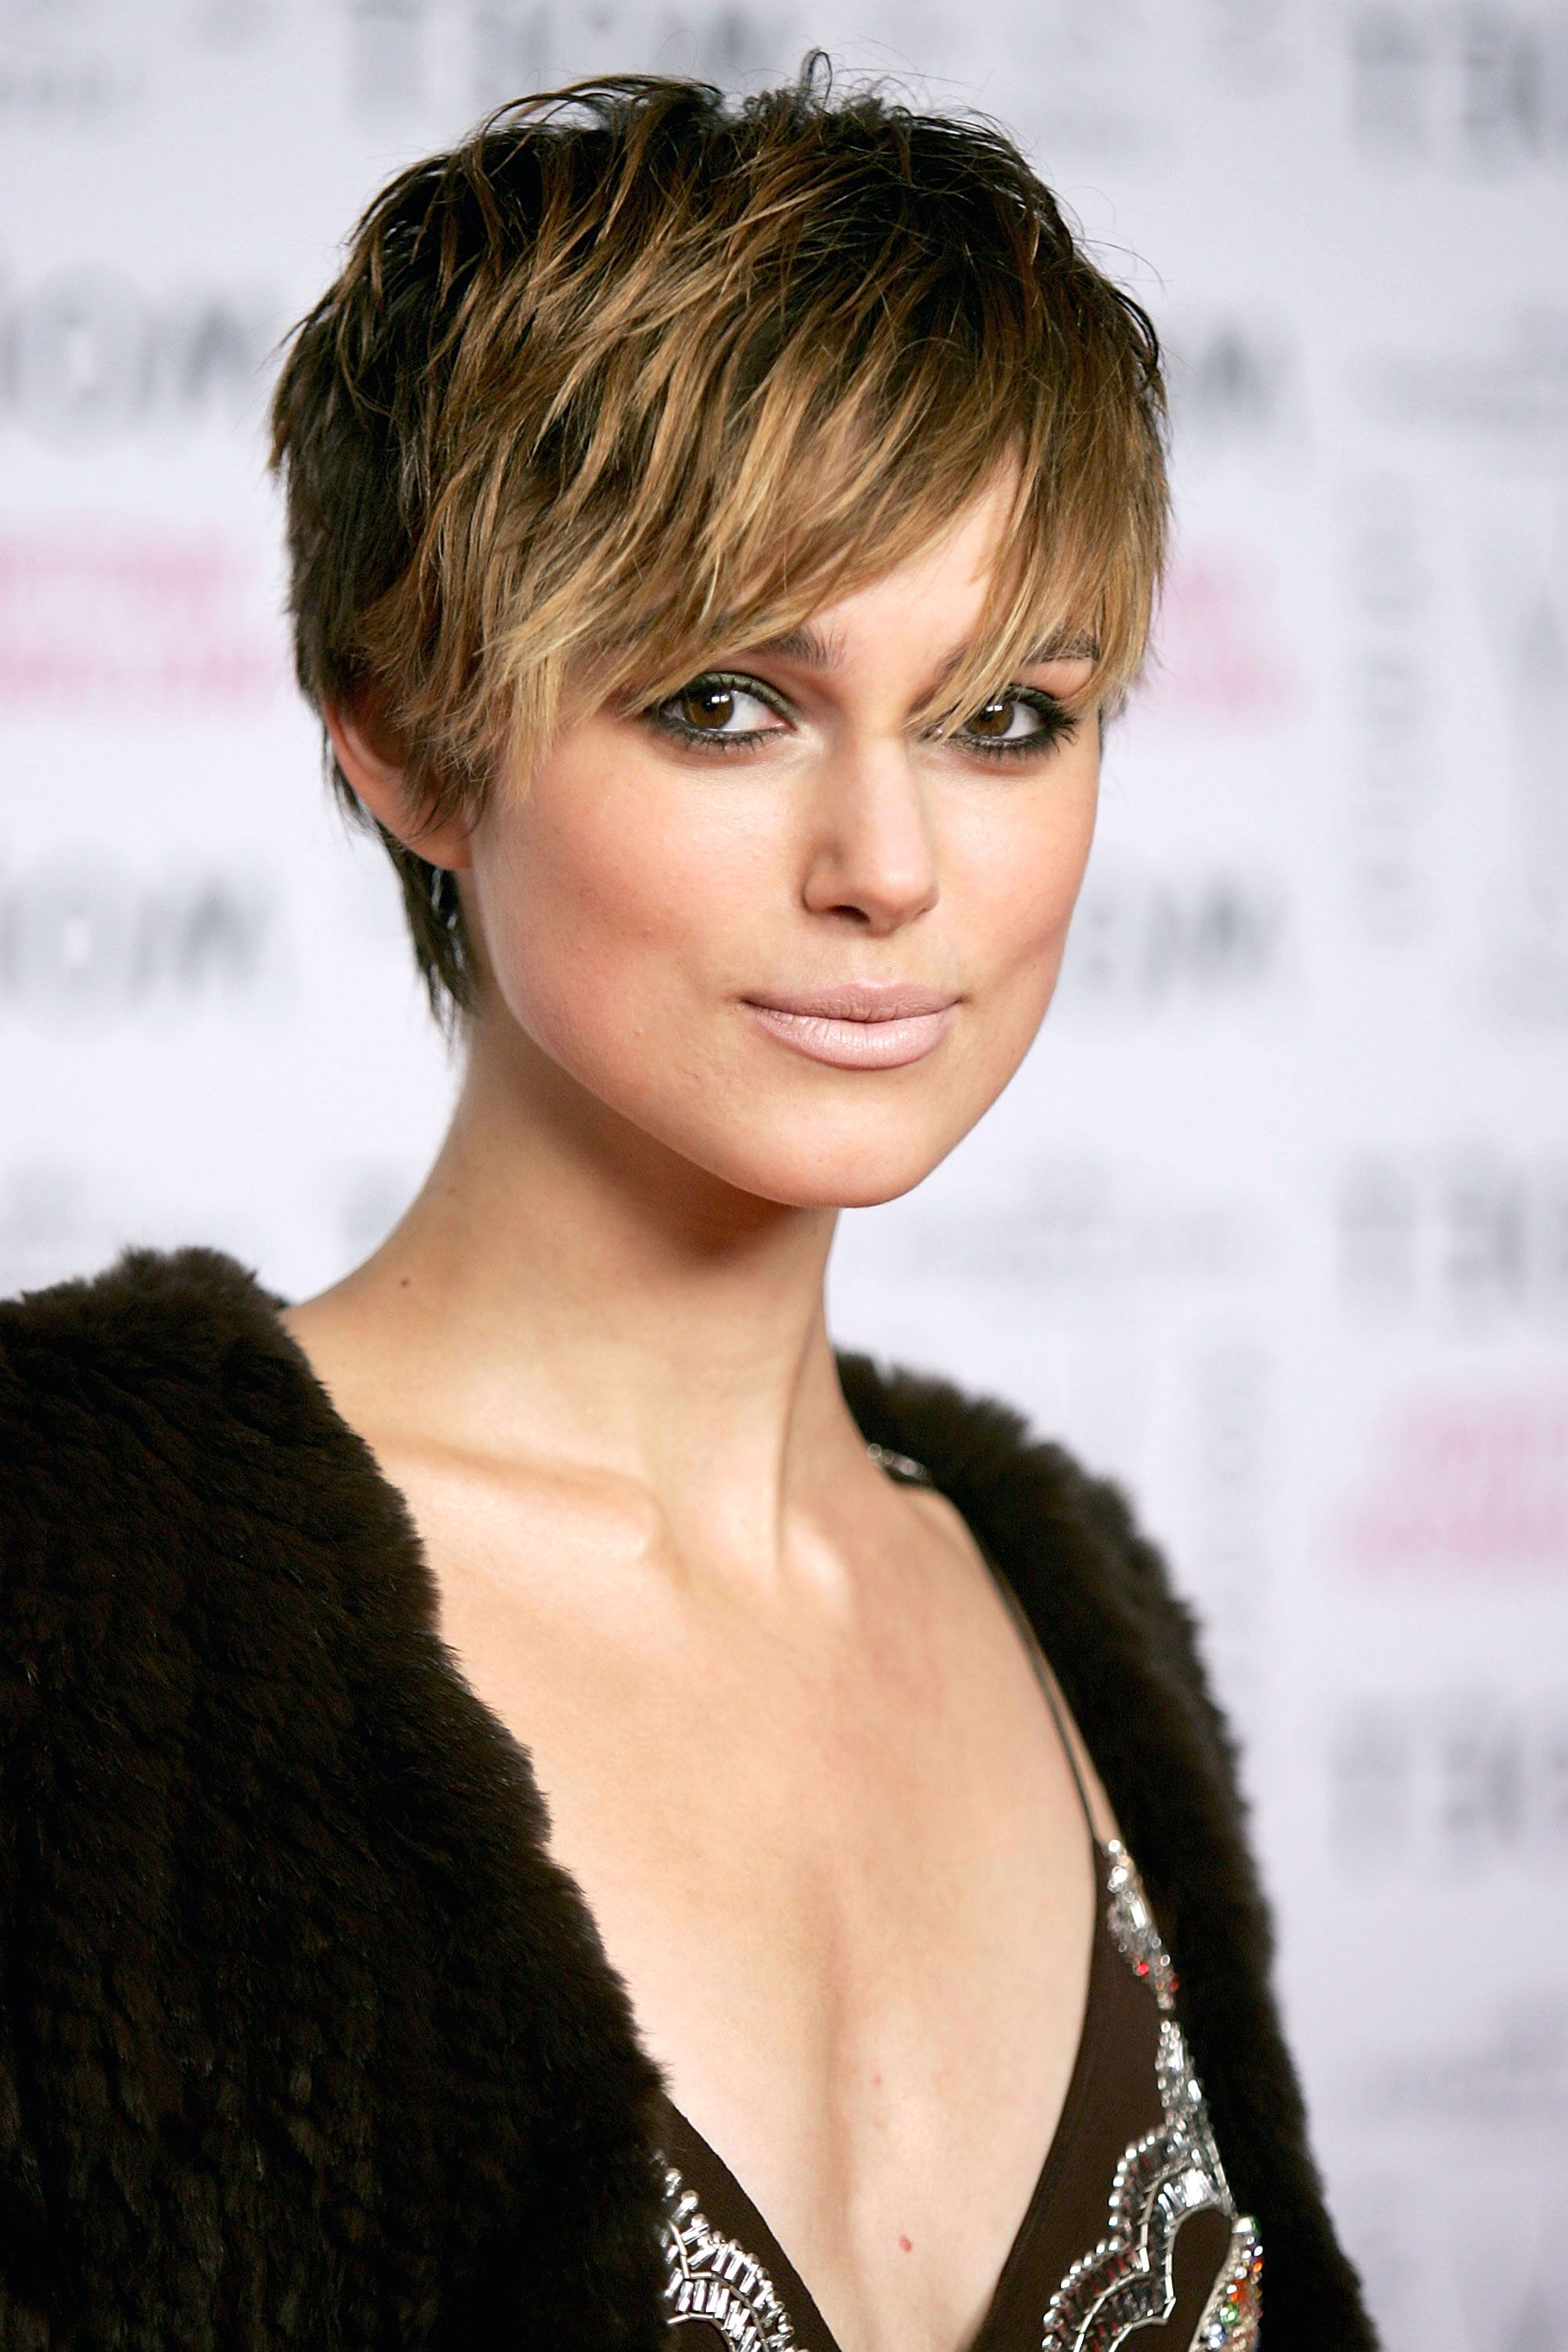 50+ Pixie Cuts We Love For 2018 – Short Pixie Hairstyles From Inside Super Short Haircuts For Girls (View 4 of 25)